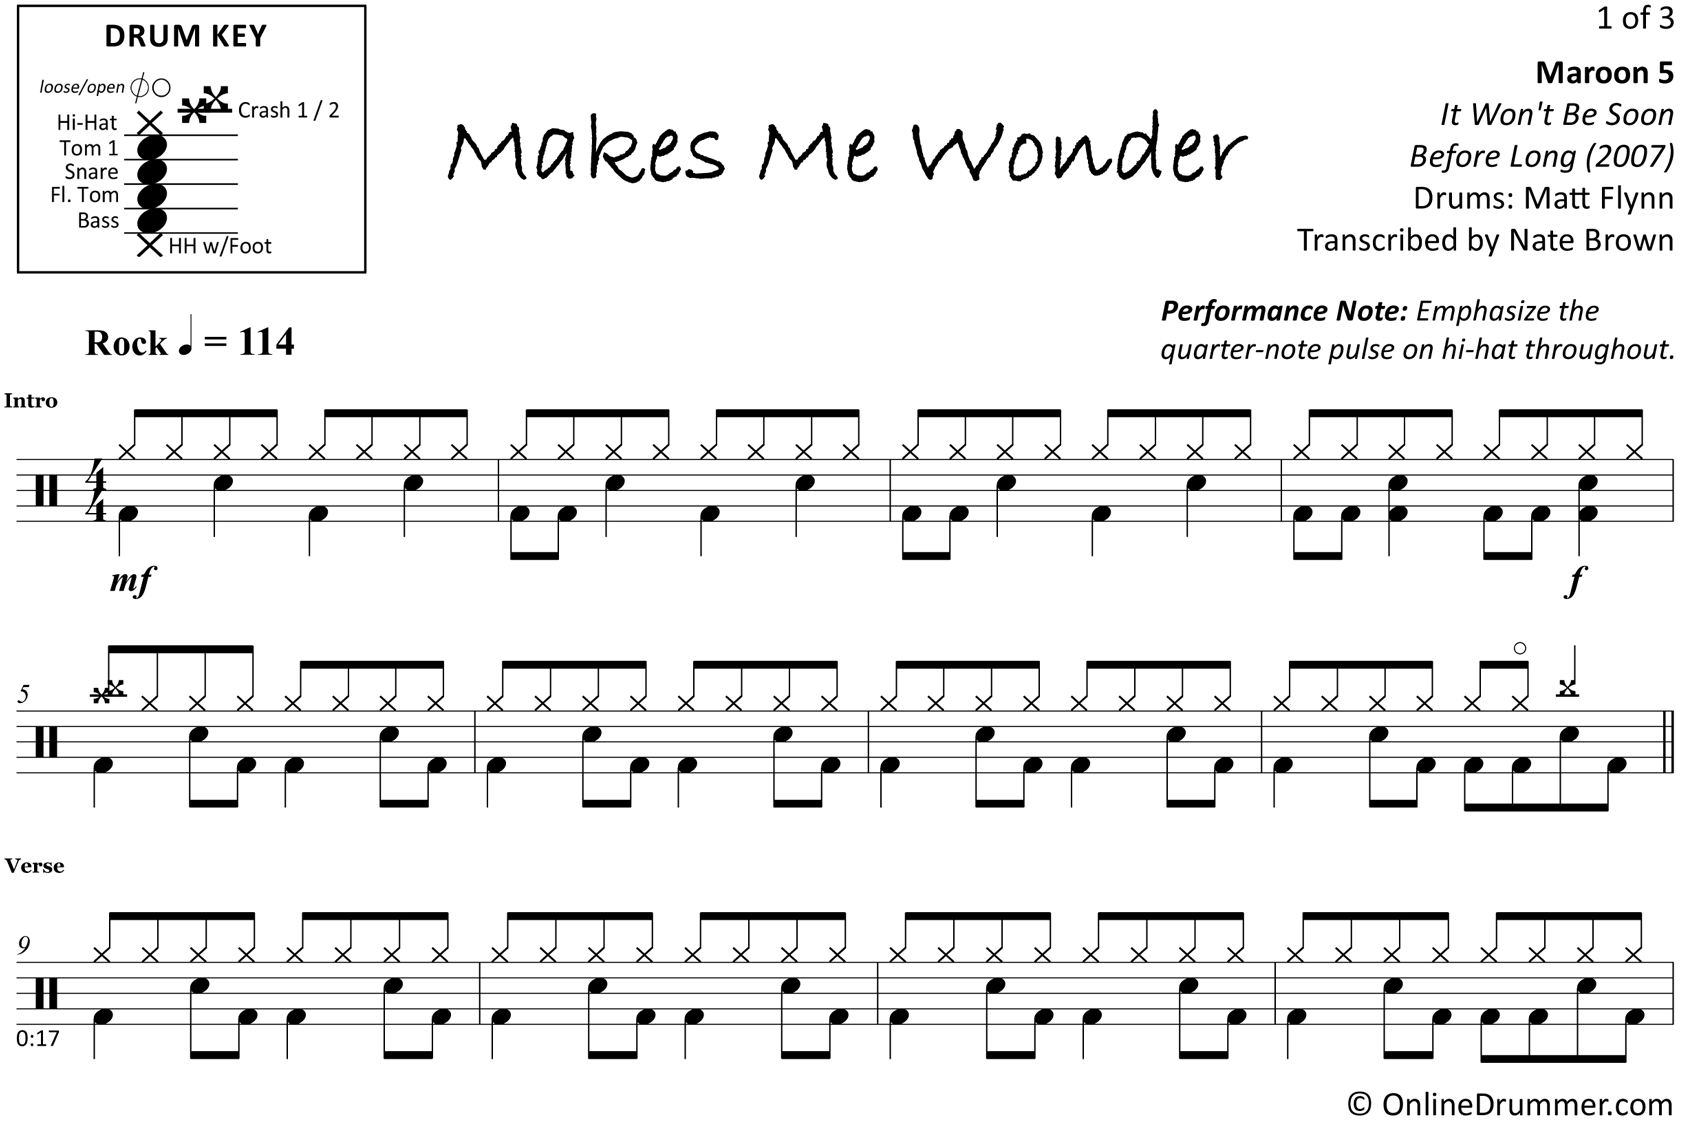 Makes Me Wonder - Maroon 5 - Drum Sheet Music